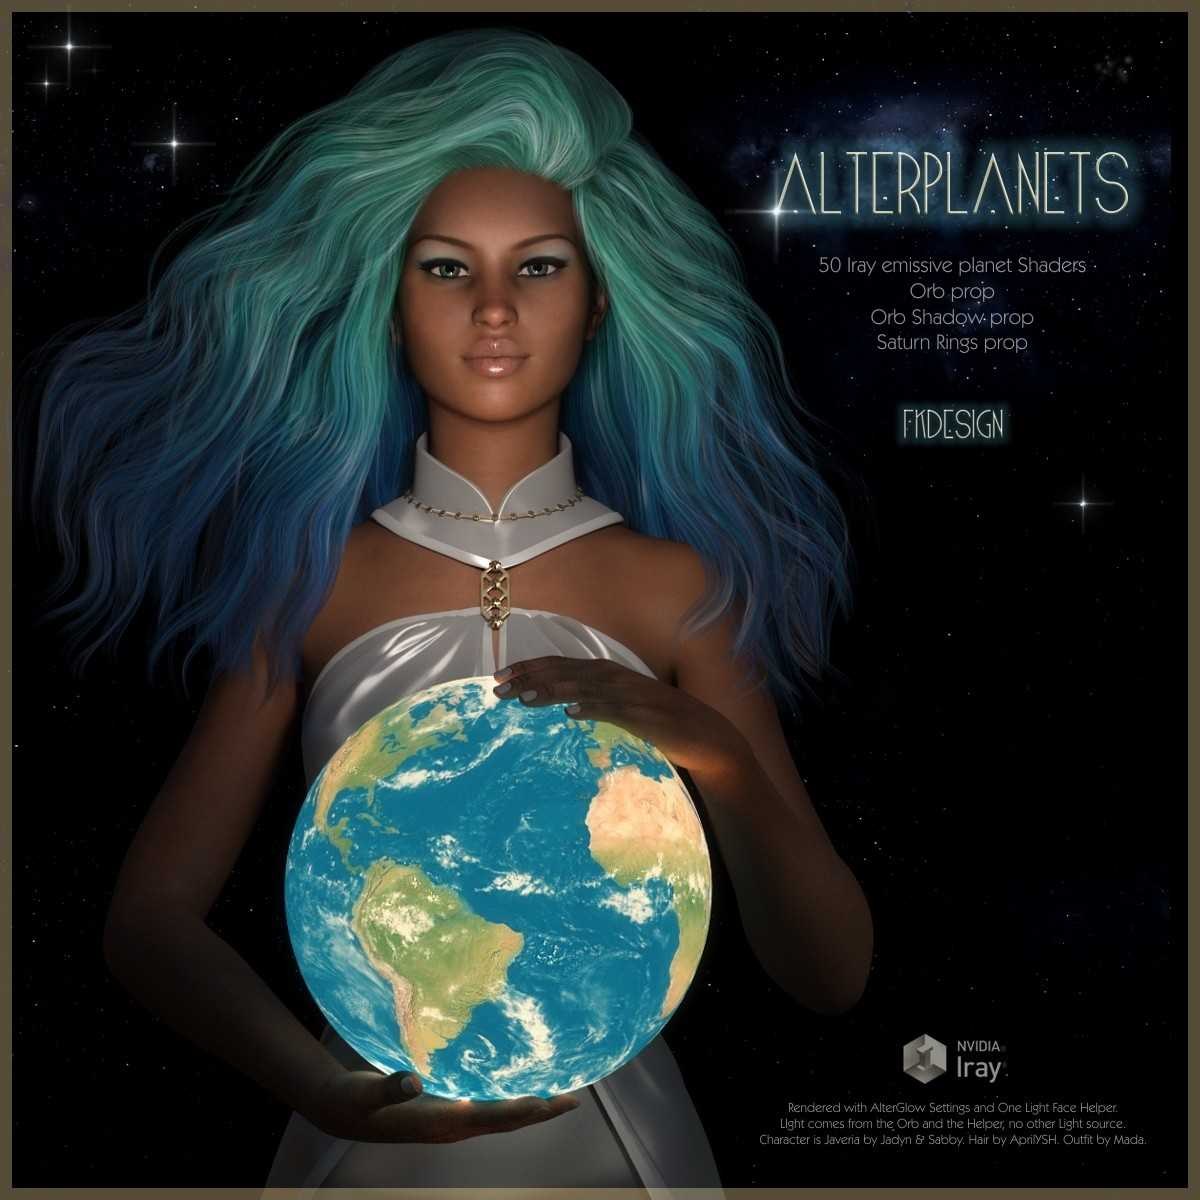 Alter Planets Iray